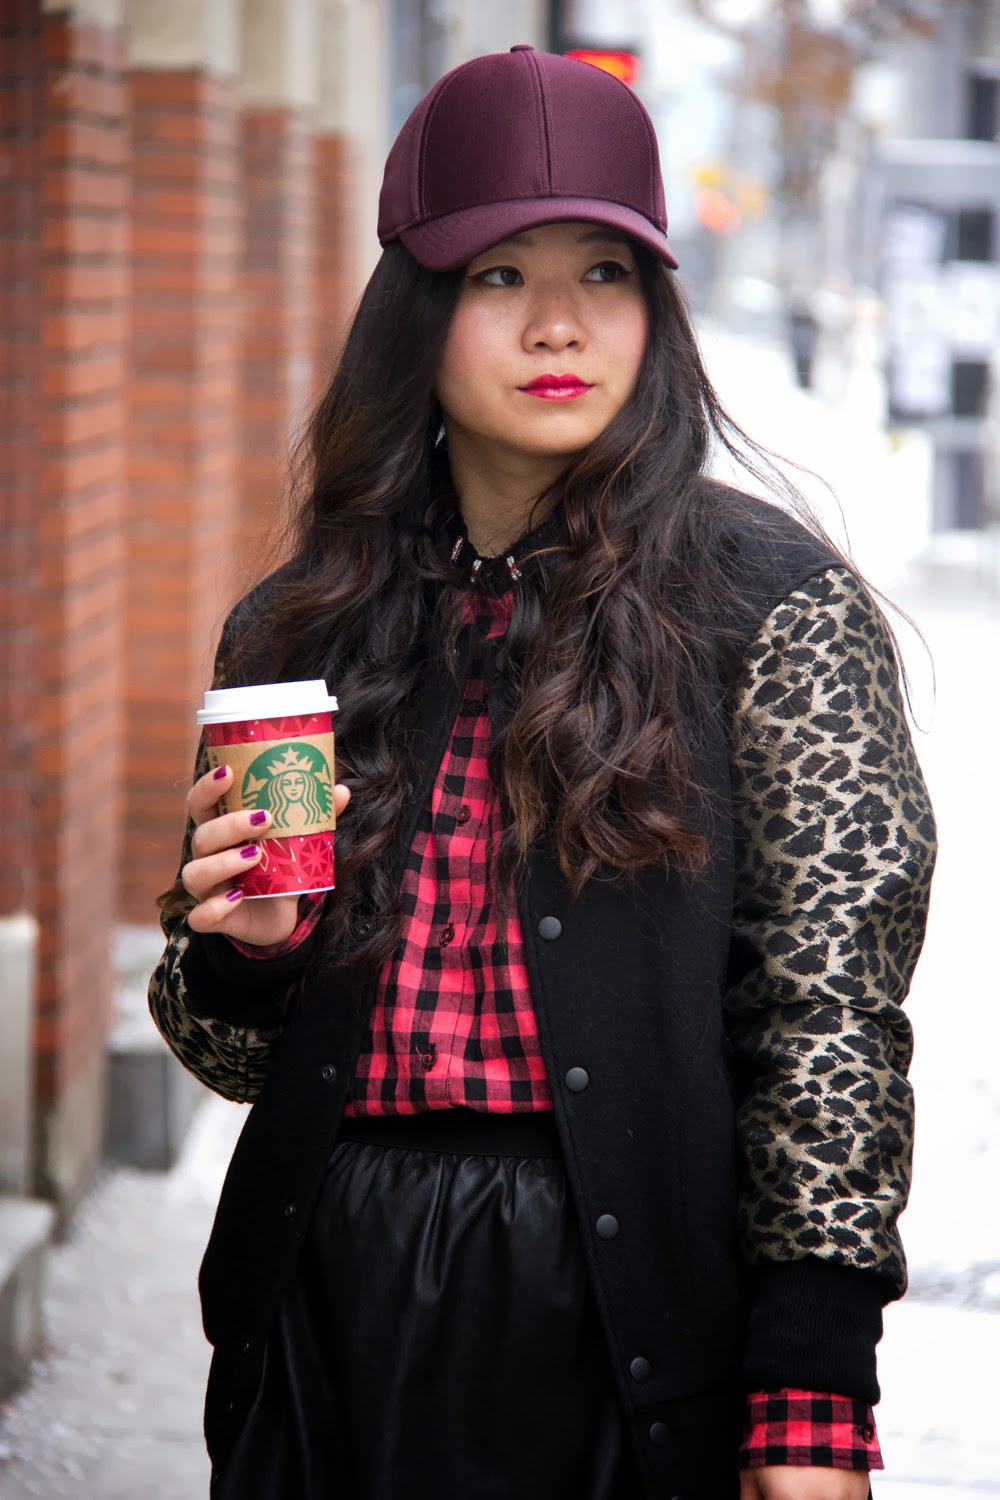 Burgundy-Baseball-Hat, Aritzia-Varsity-Jacket, Street-Style, Fashion-Blogger